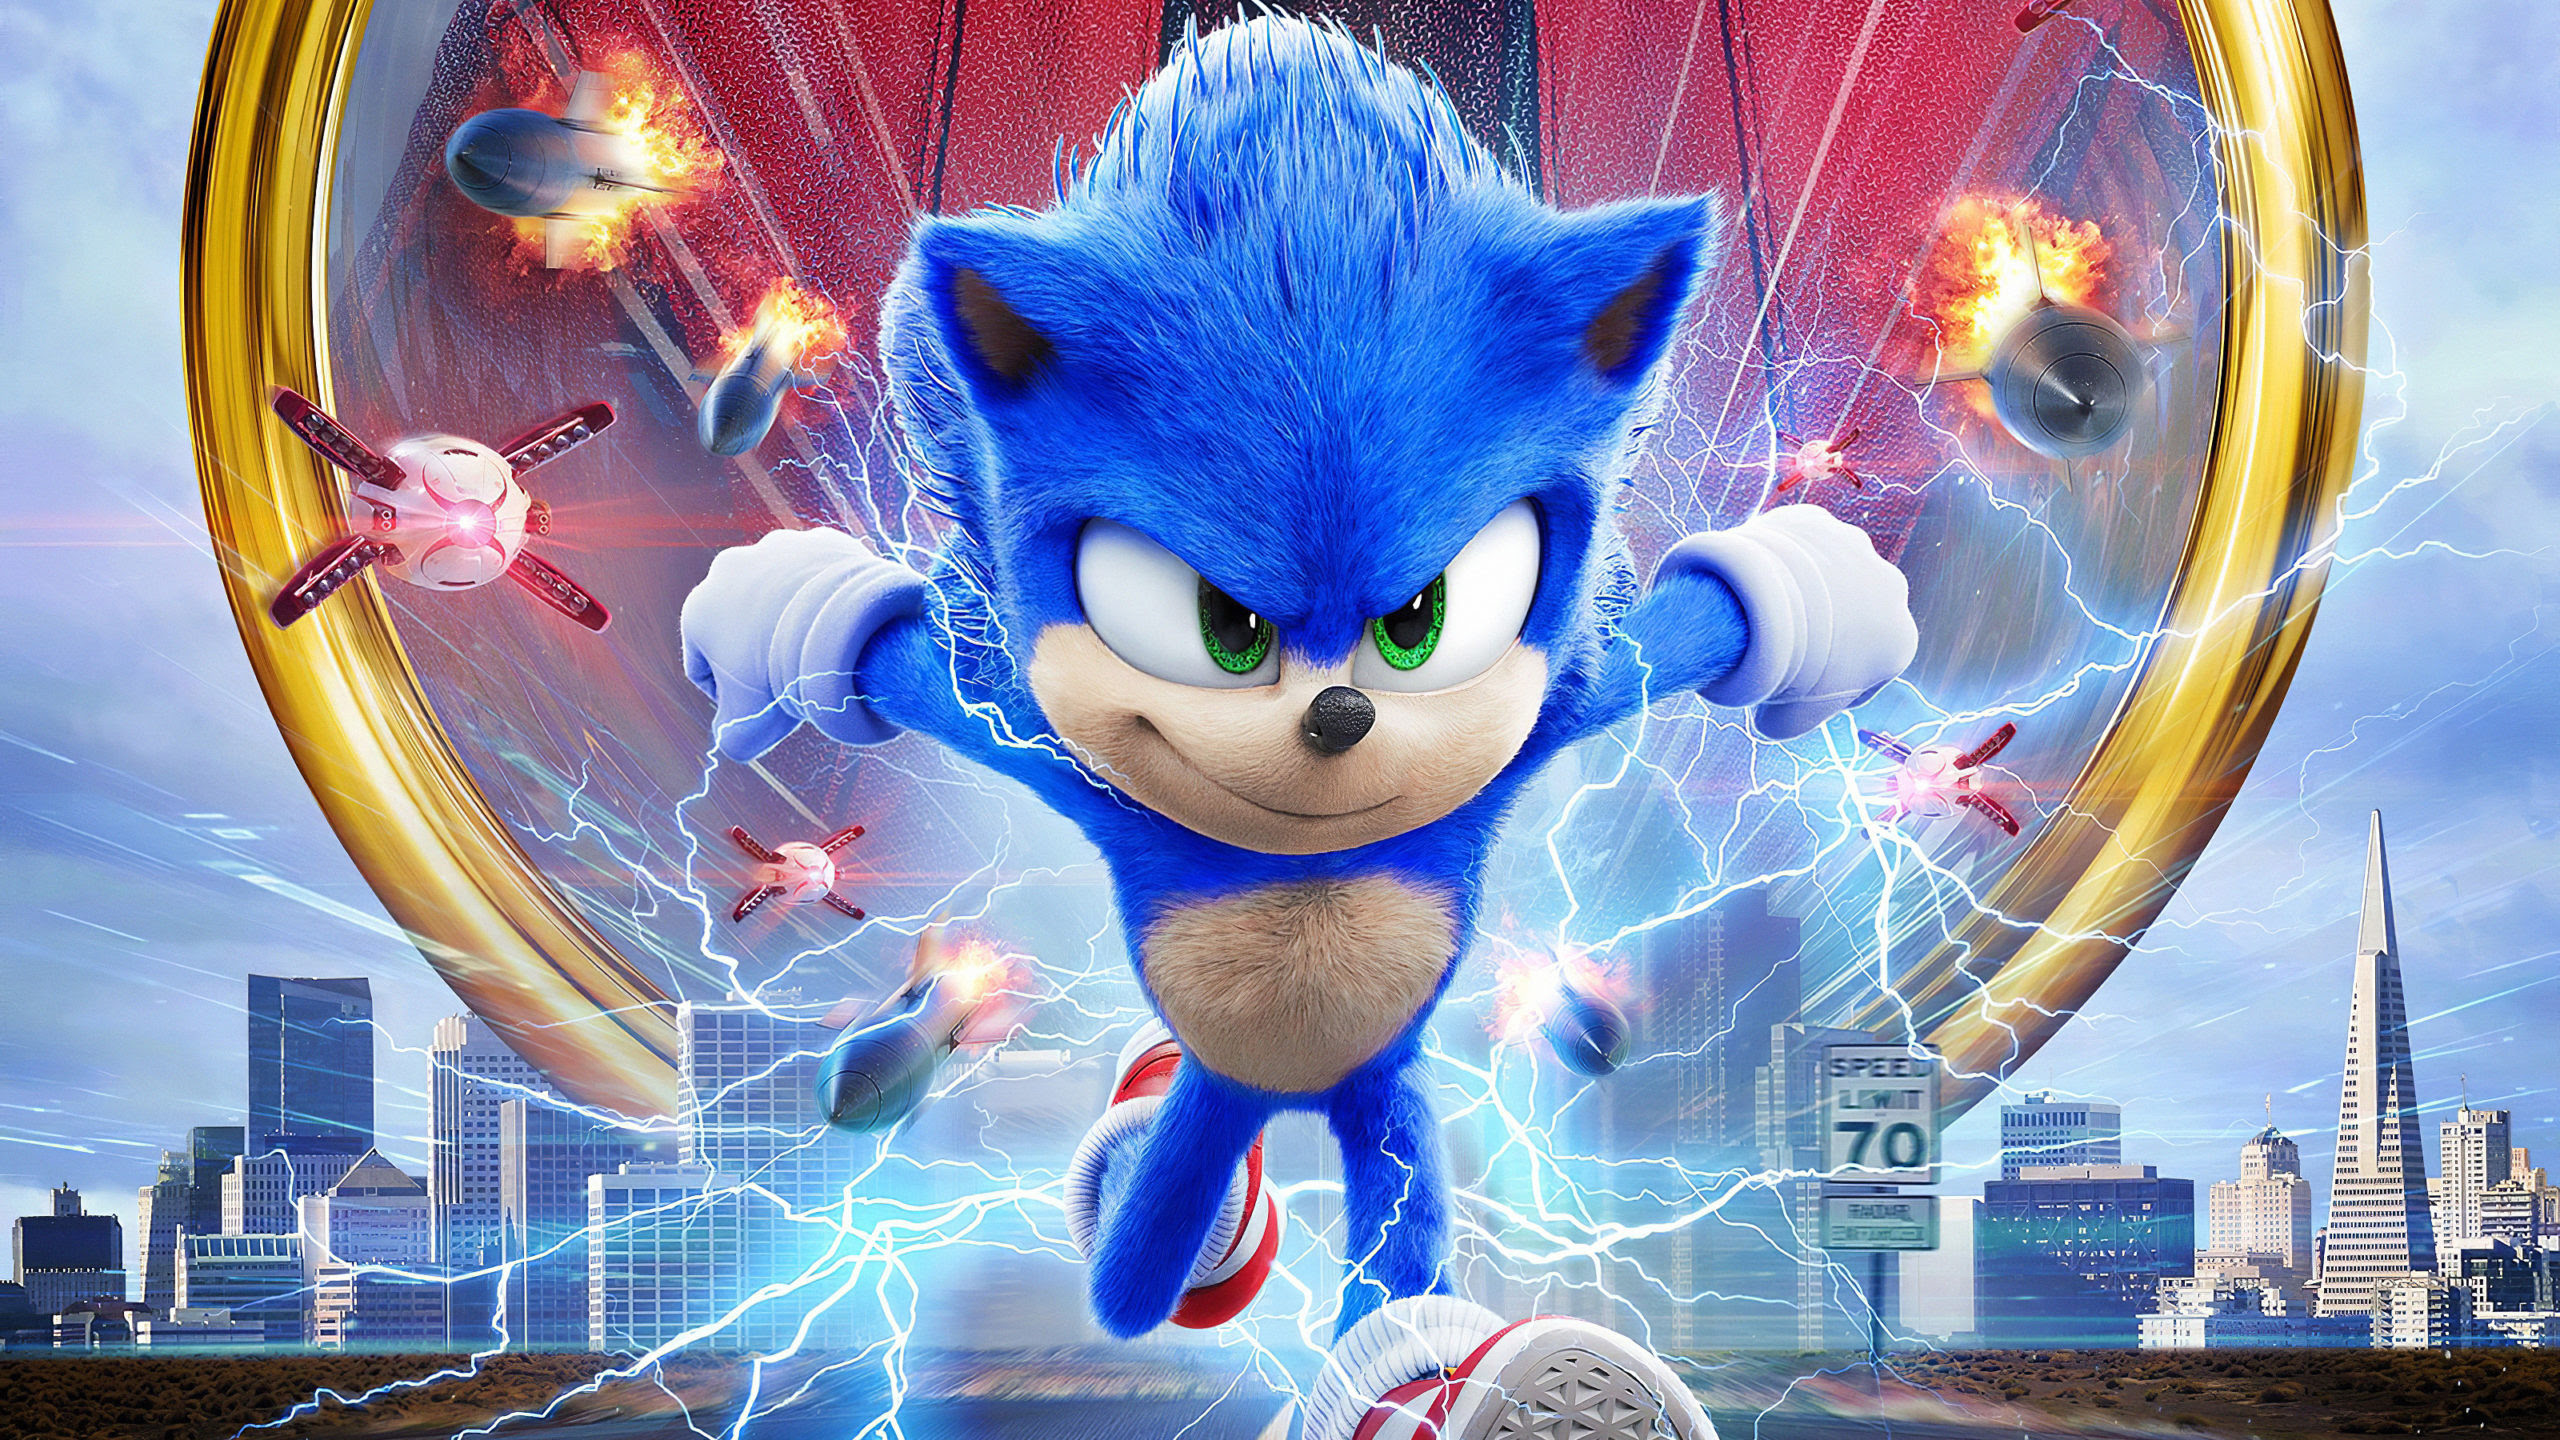 Sonic The Hedgehog Movie Review 2020 Utterly Cheesy And Stupid